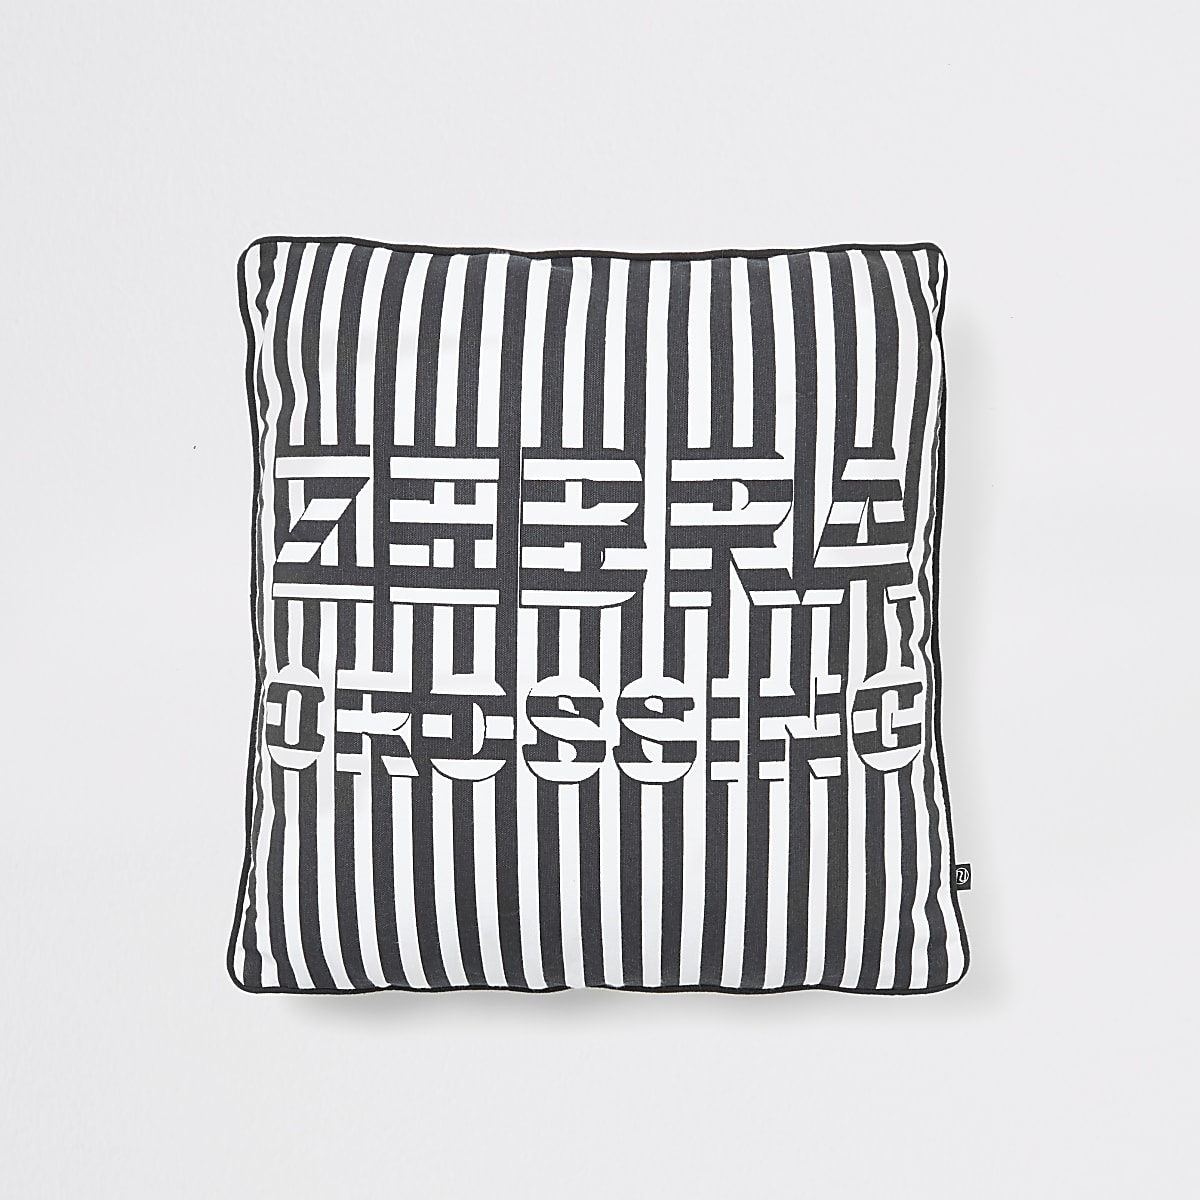 Black 'Zebra Crossing' slogan cushion